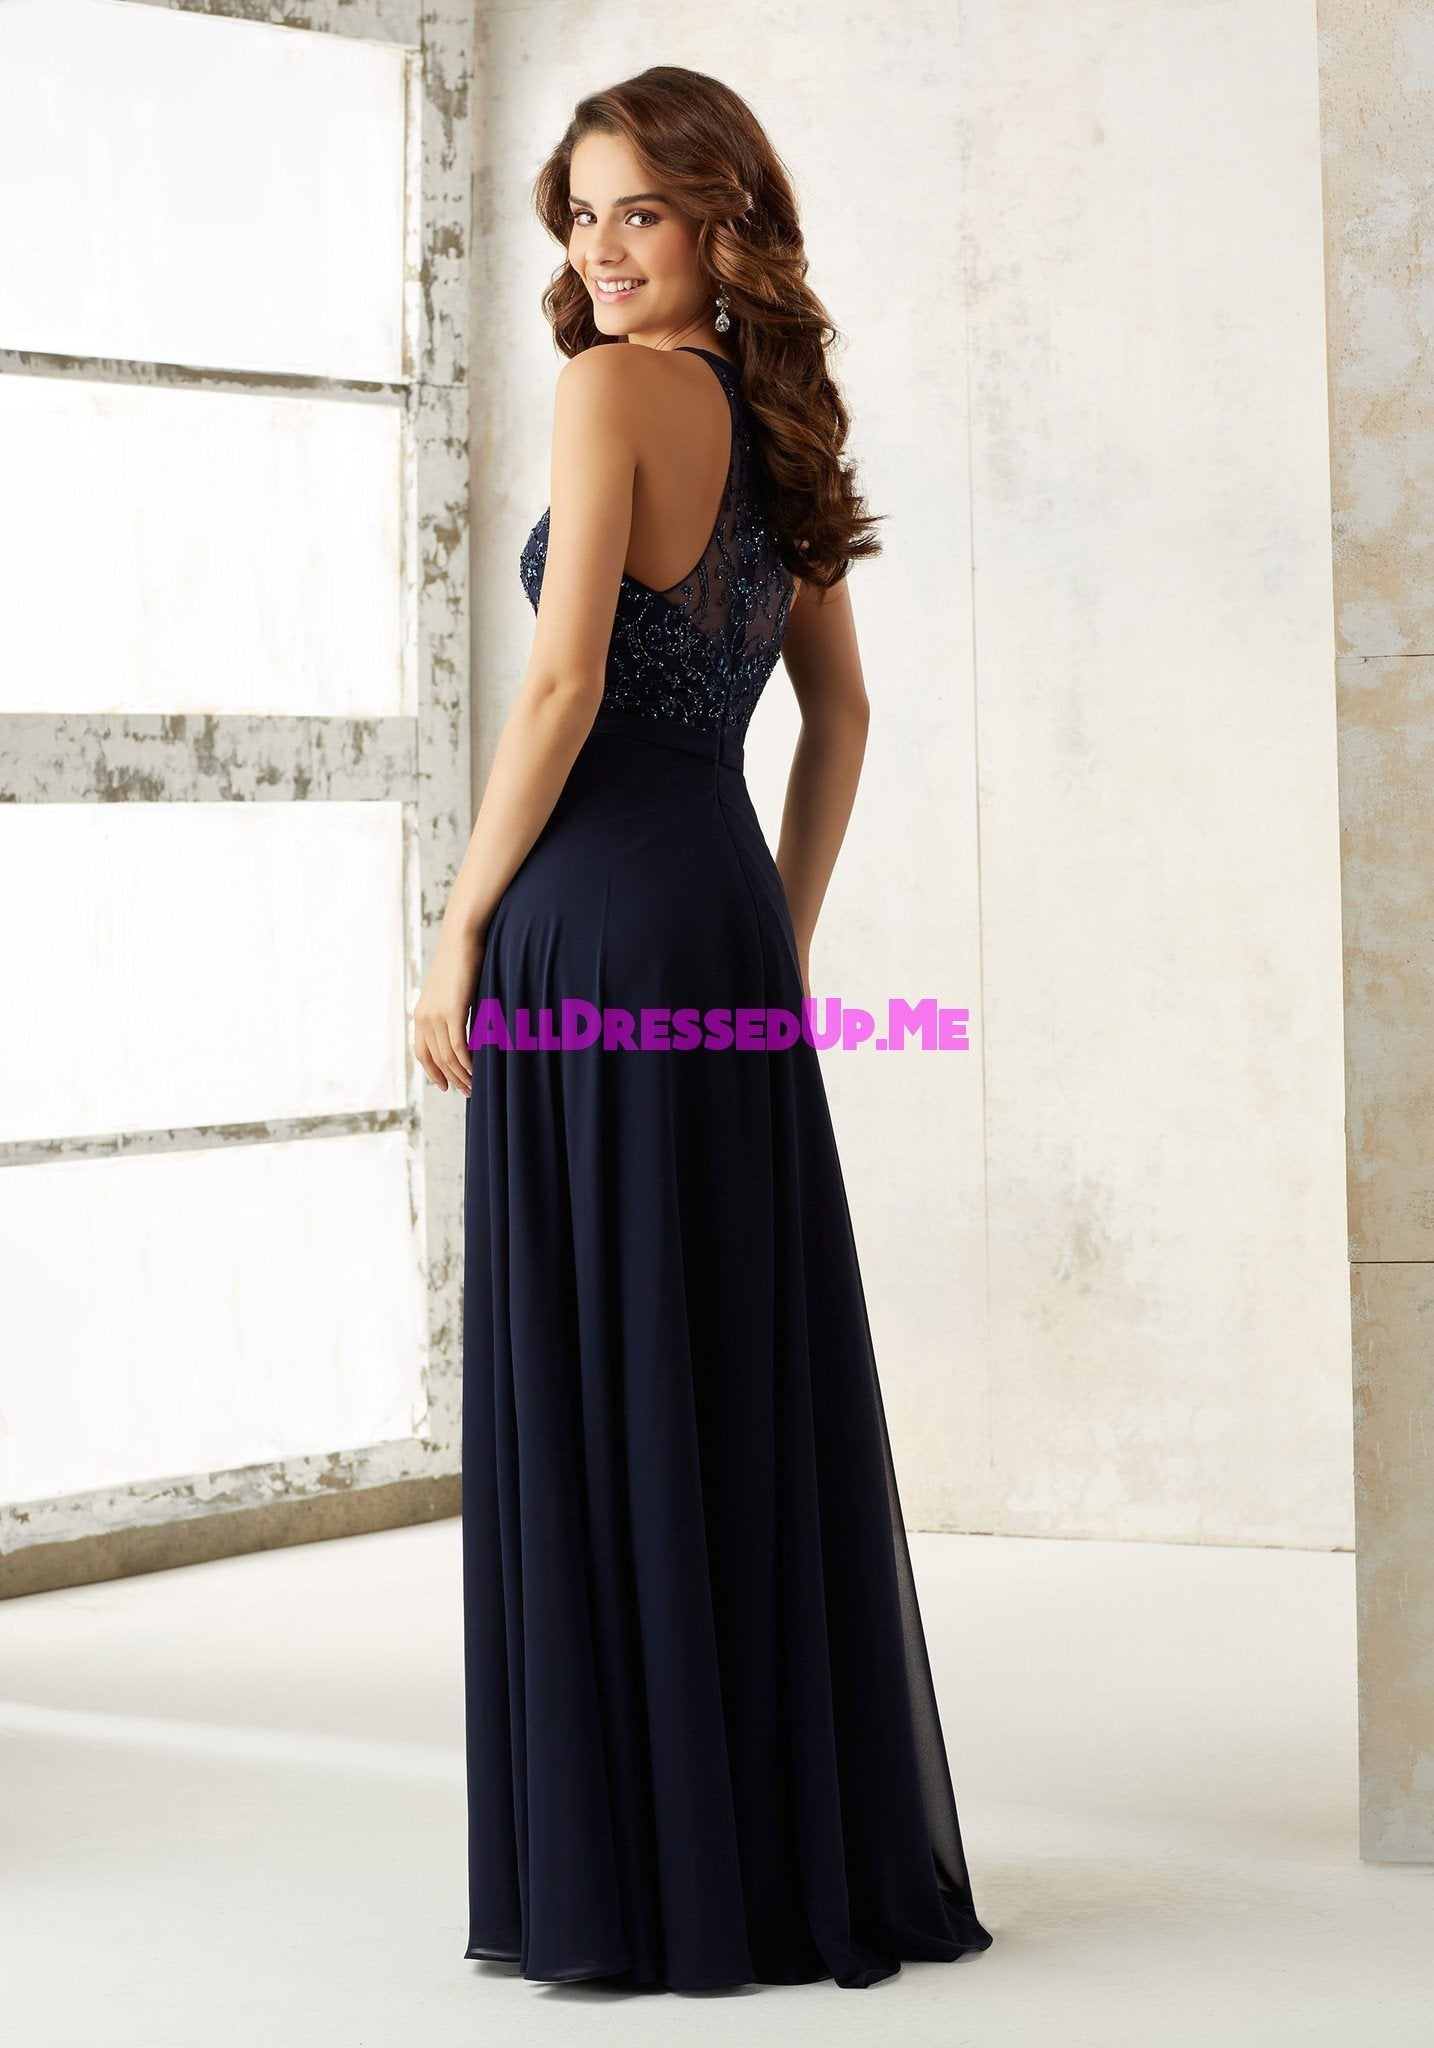 Morilee bridesmaids dresses 21506 all dressed up bridal prom morilee bridesmaids dresses 21506 all dressed up morilee dresses wedding chattanooga ombrellifo Image collections